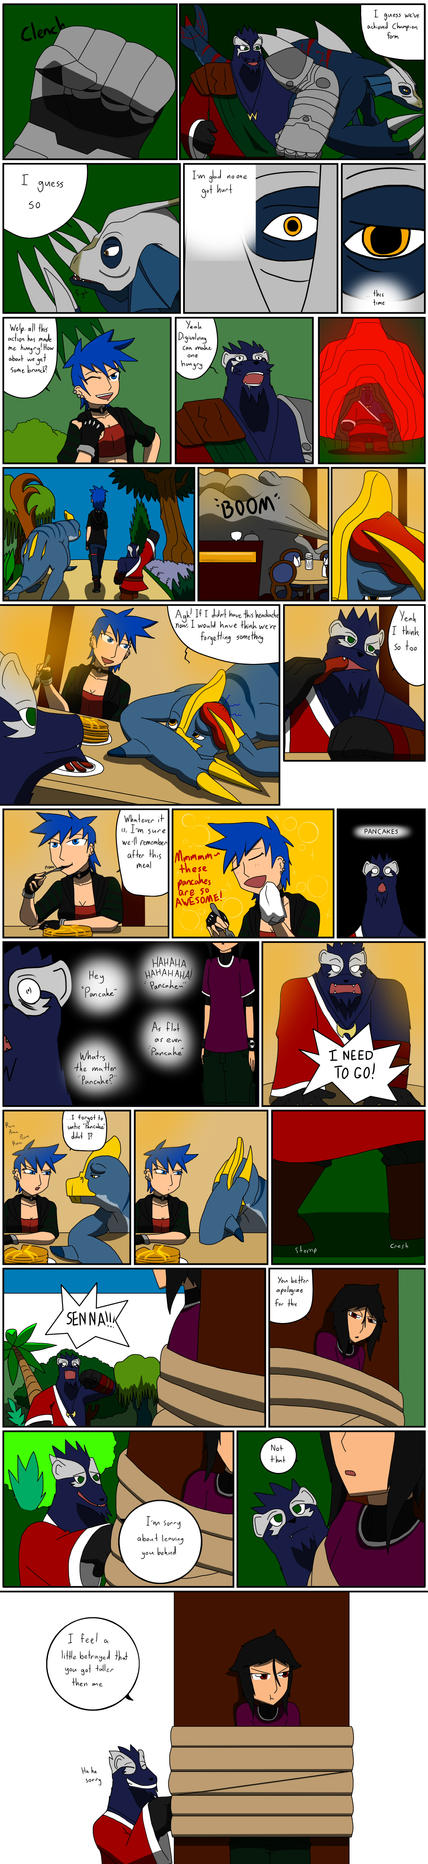 TDA Event 1: Battle of Fire and Water part 12 by SquirrelManiak